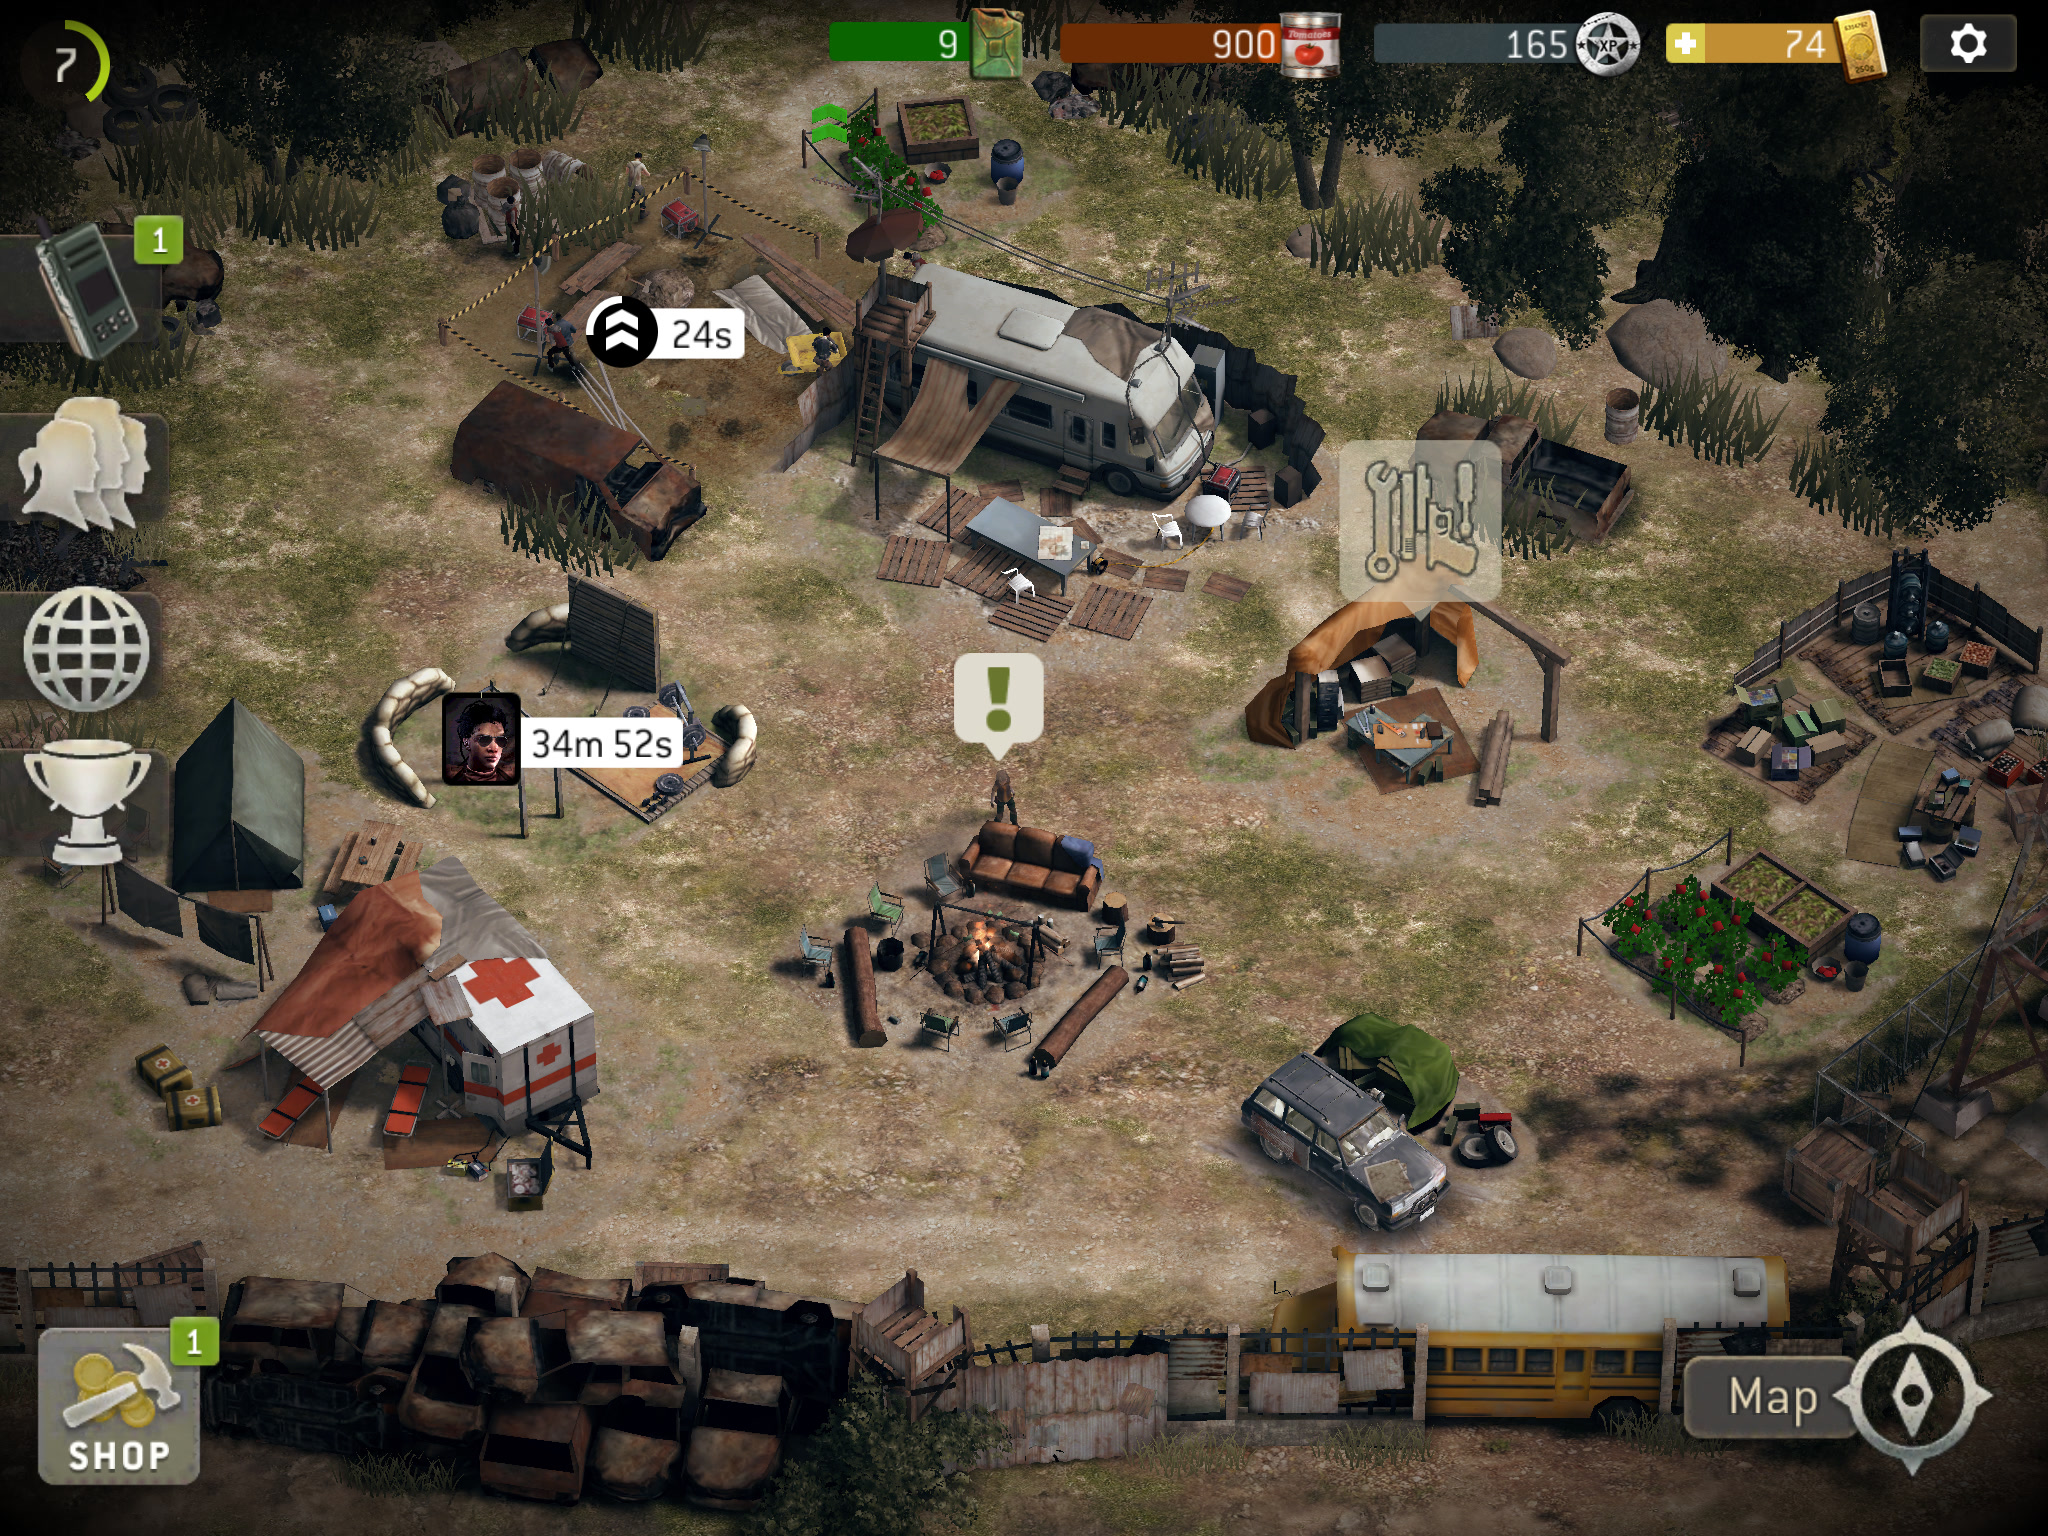 The Walking Dead No Mans Land Guide  How To Play the Game